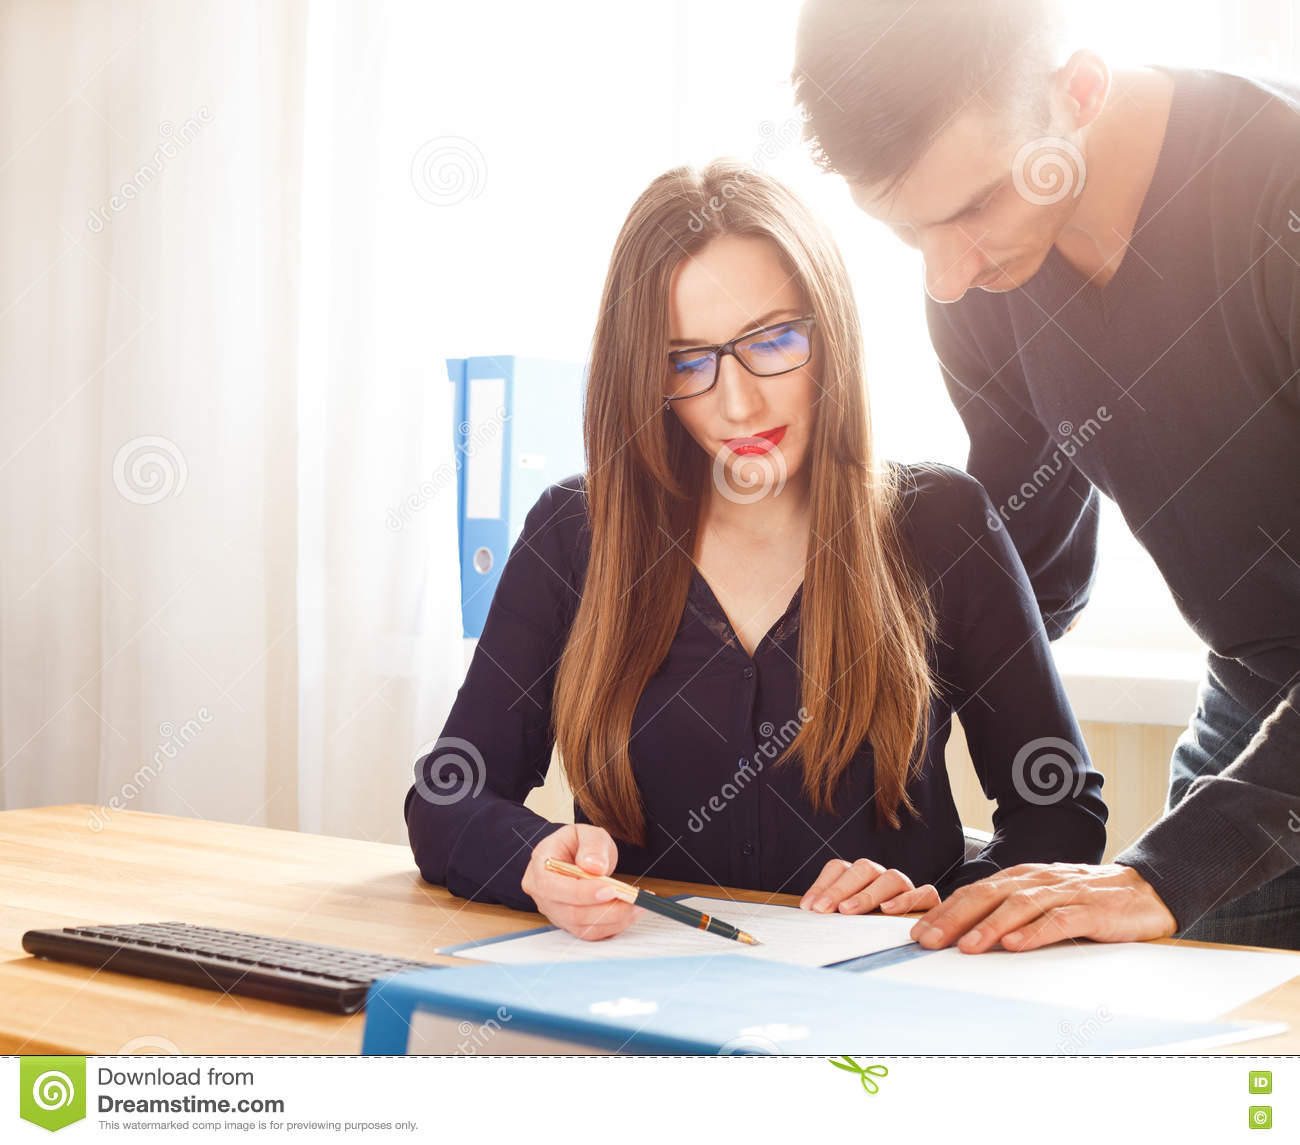 people in business essay Database of free business essays - we have thousands of free essays across a wide range of subject areas sample business essays.